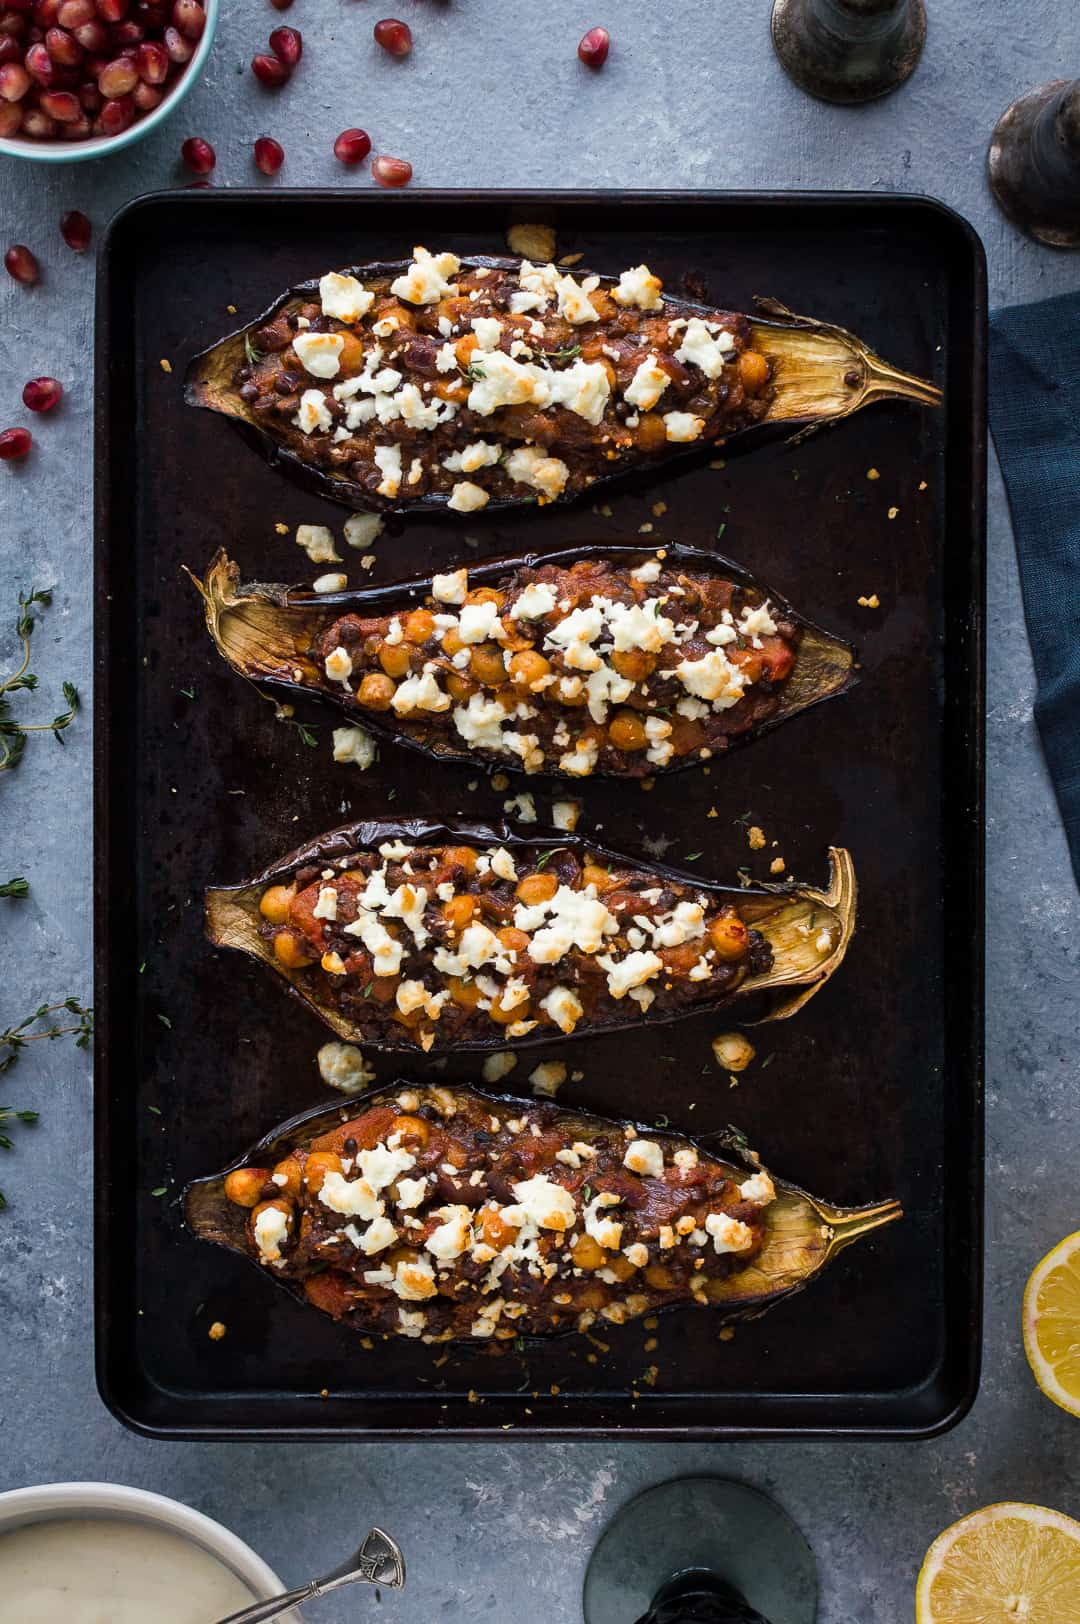 Roasted aubergines stuffed with chickpeas and lentils toppedwith feta on a black baking tray.